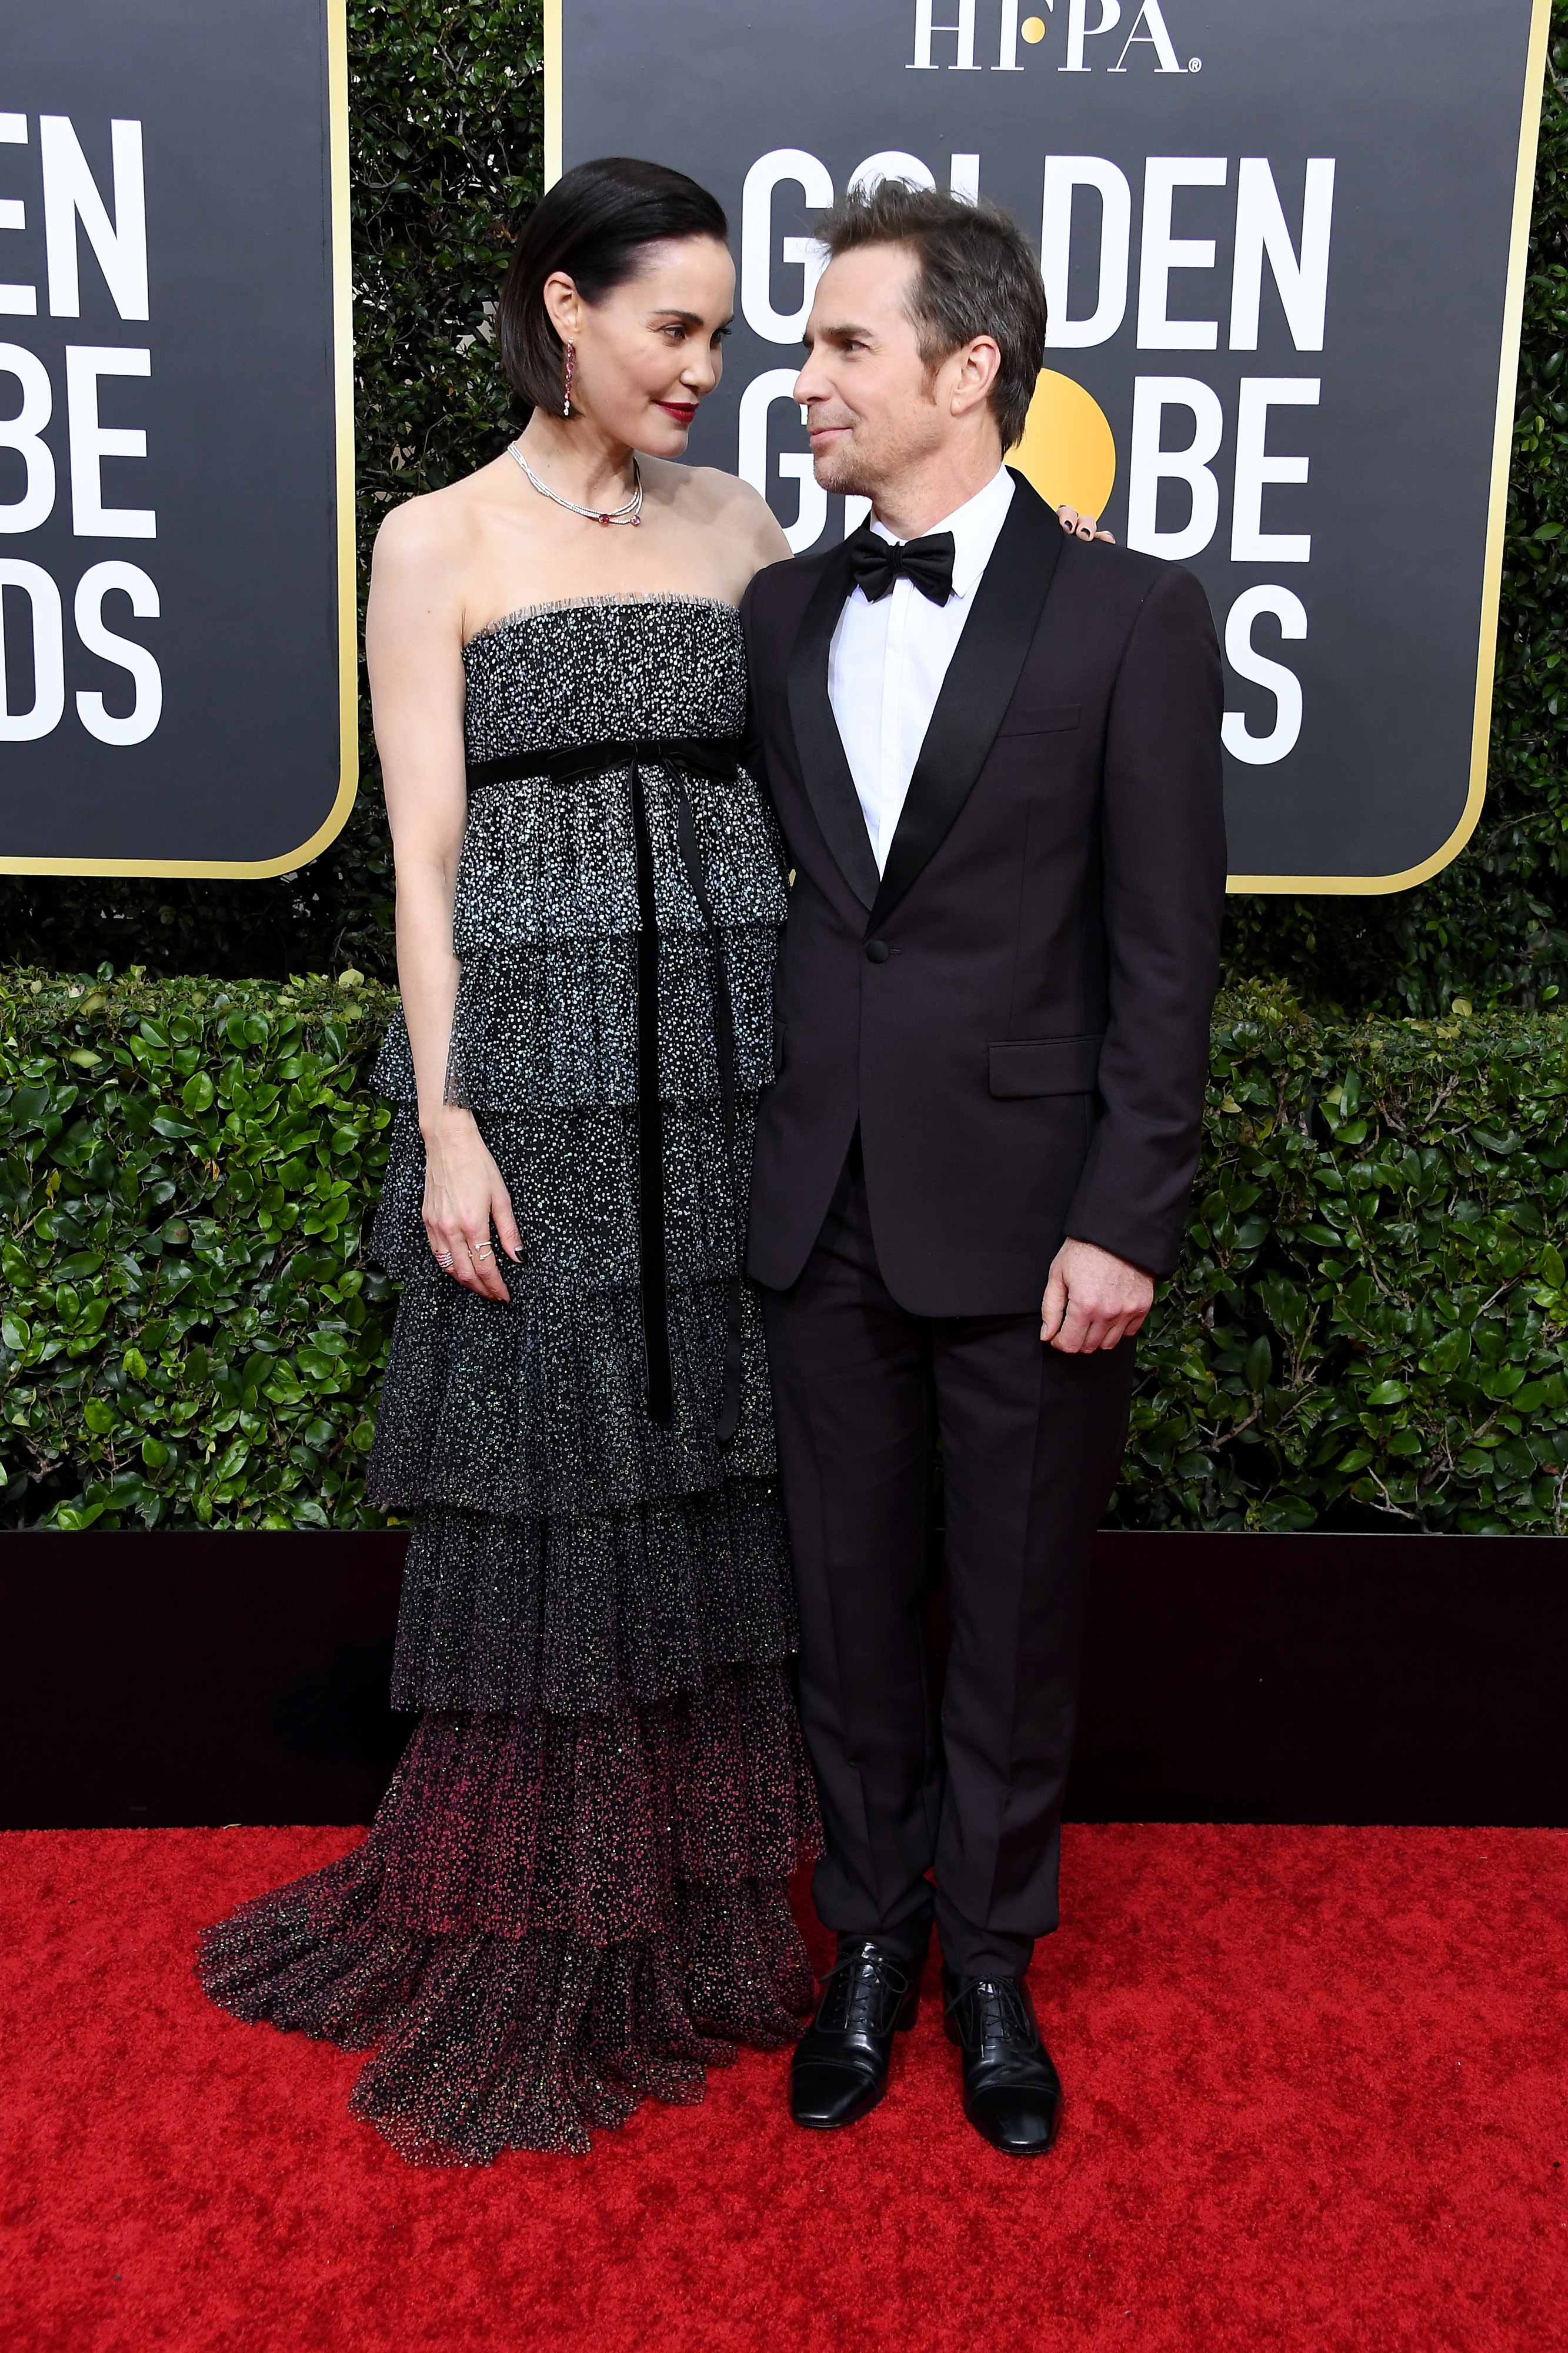 BEVERLY HILLS, CALIFORNIA - JANUARY 05:  (L-R) Leslie Bibb and Sam Rockwell attends the 77th Annual Golden Globe Awards at The Beverly Hilton Hotel on January 05, 2020 in Beverly Hills, California. (Photo by Steve Granitz/WireImage)